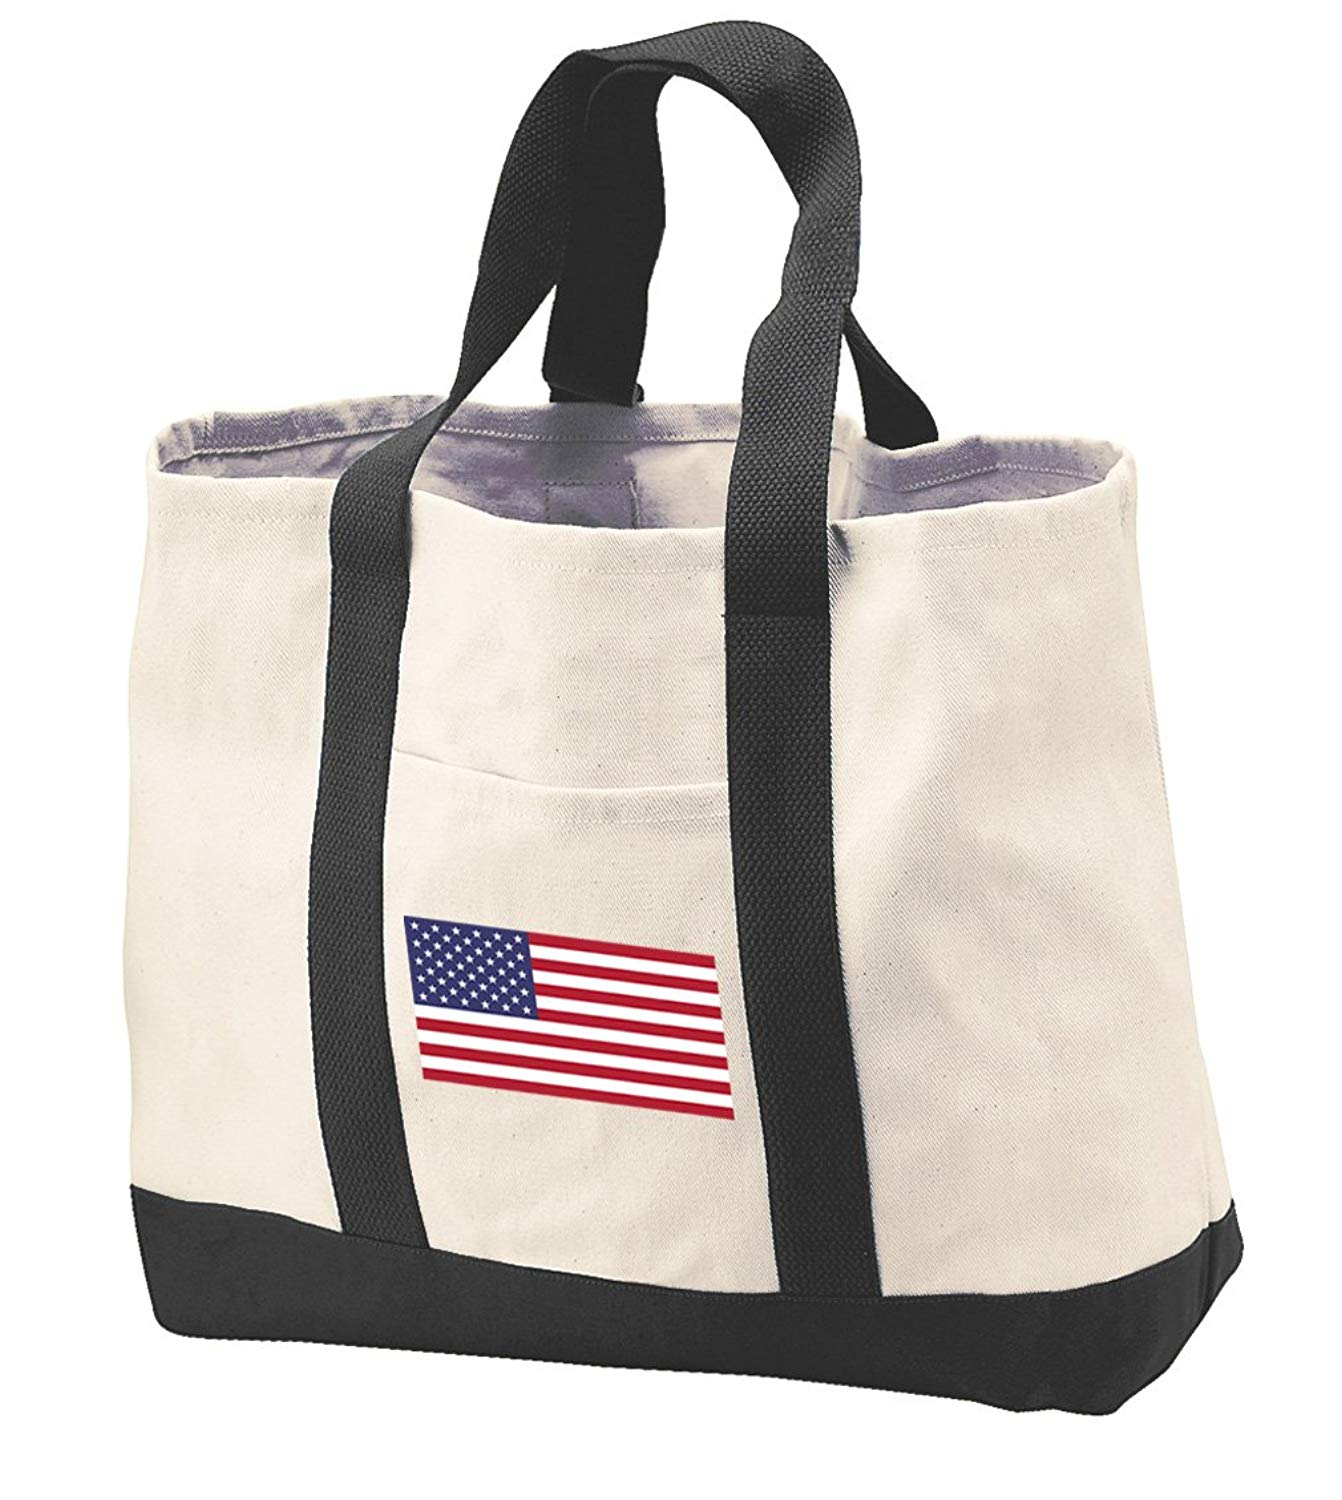 American Flag Tote Bag CANVAS American Flag Totes Beach Pool Travel Shopping Bag